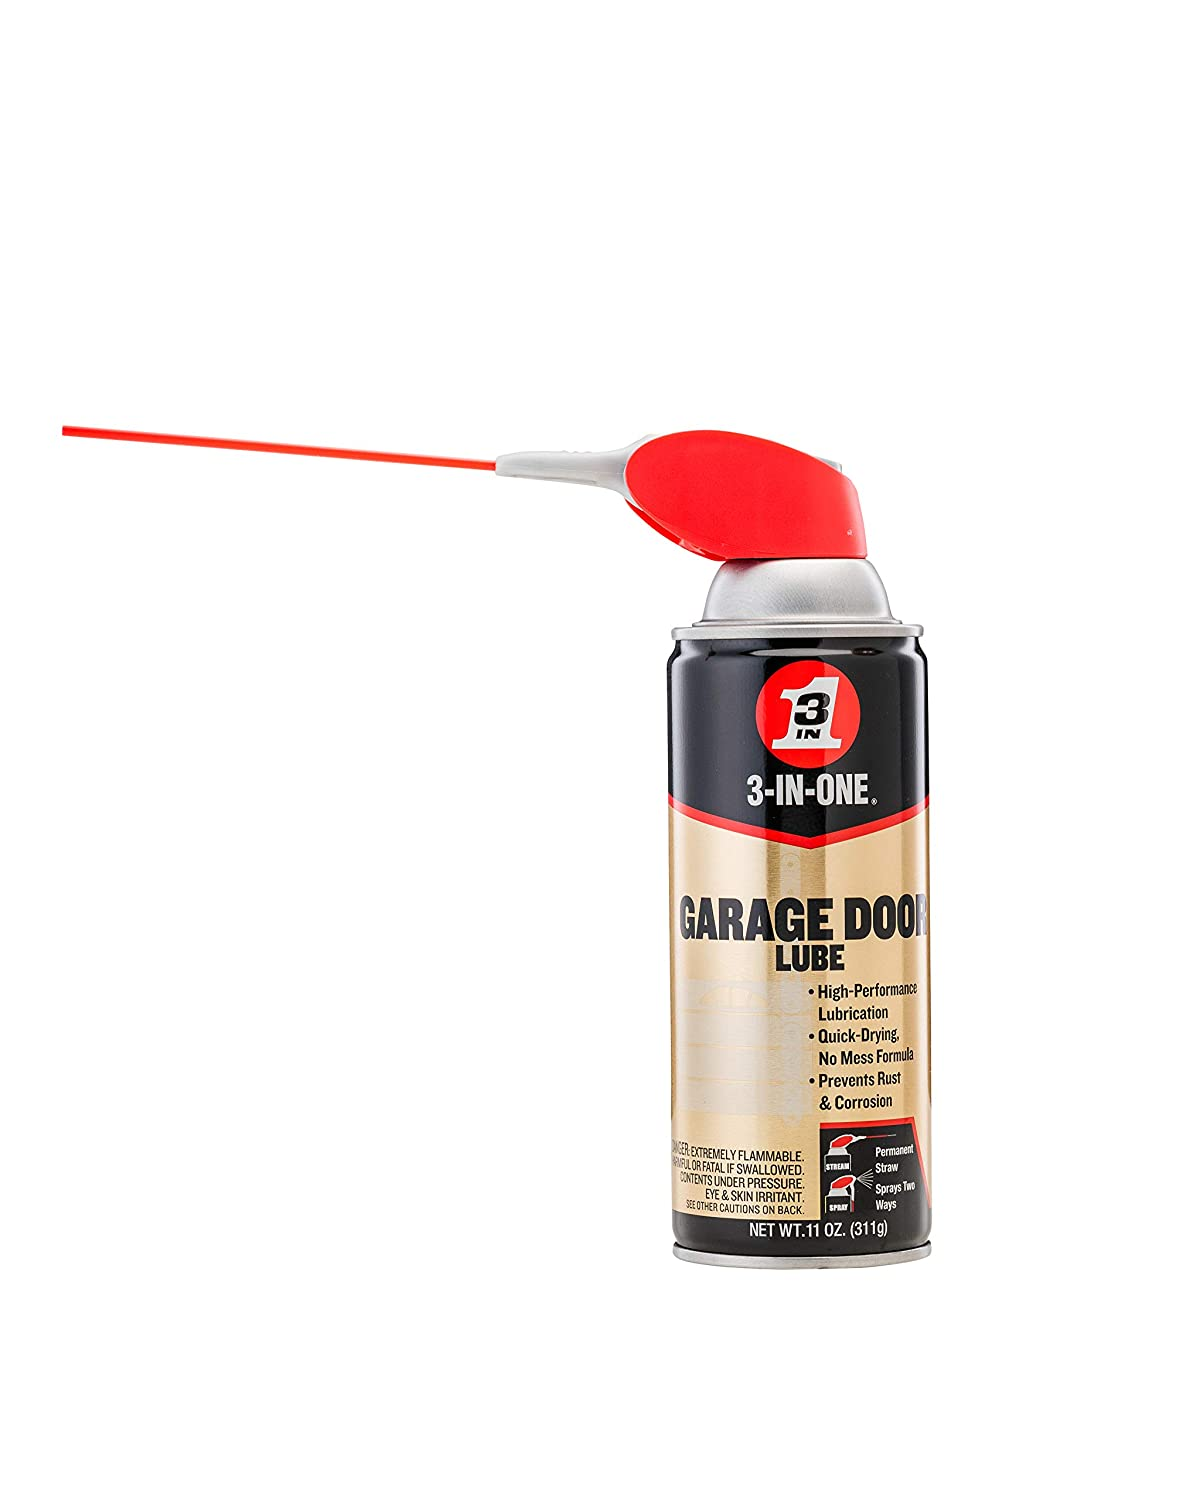 3-IN-ONE Professional Garage Door Lubricant with Smart Straw}